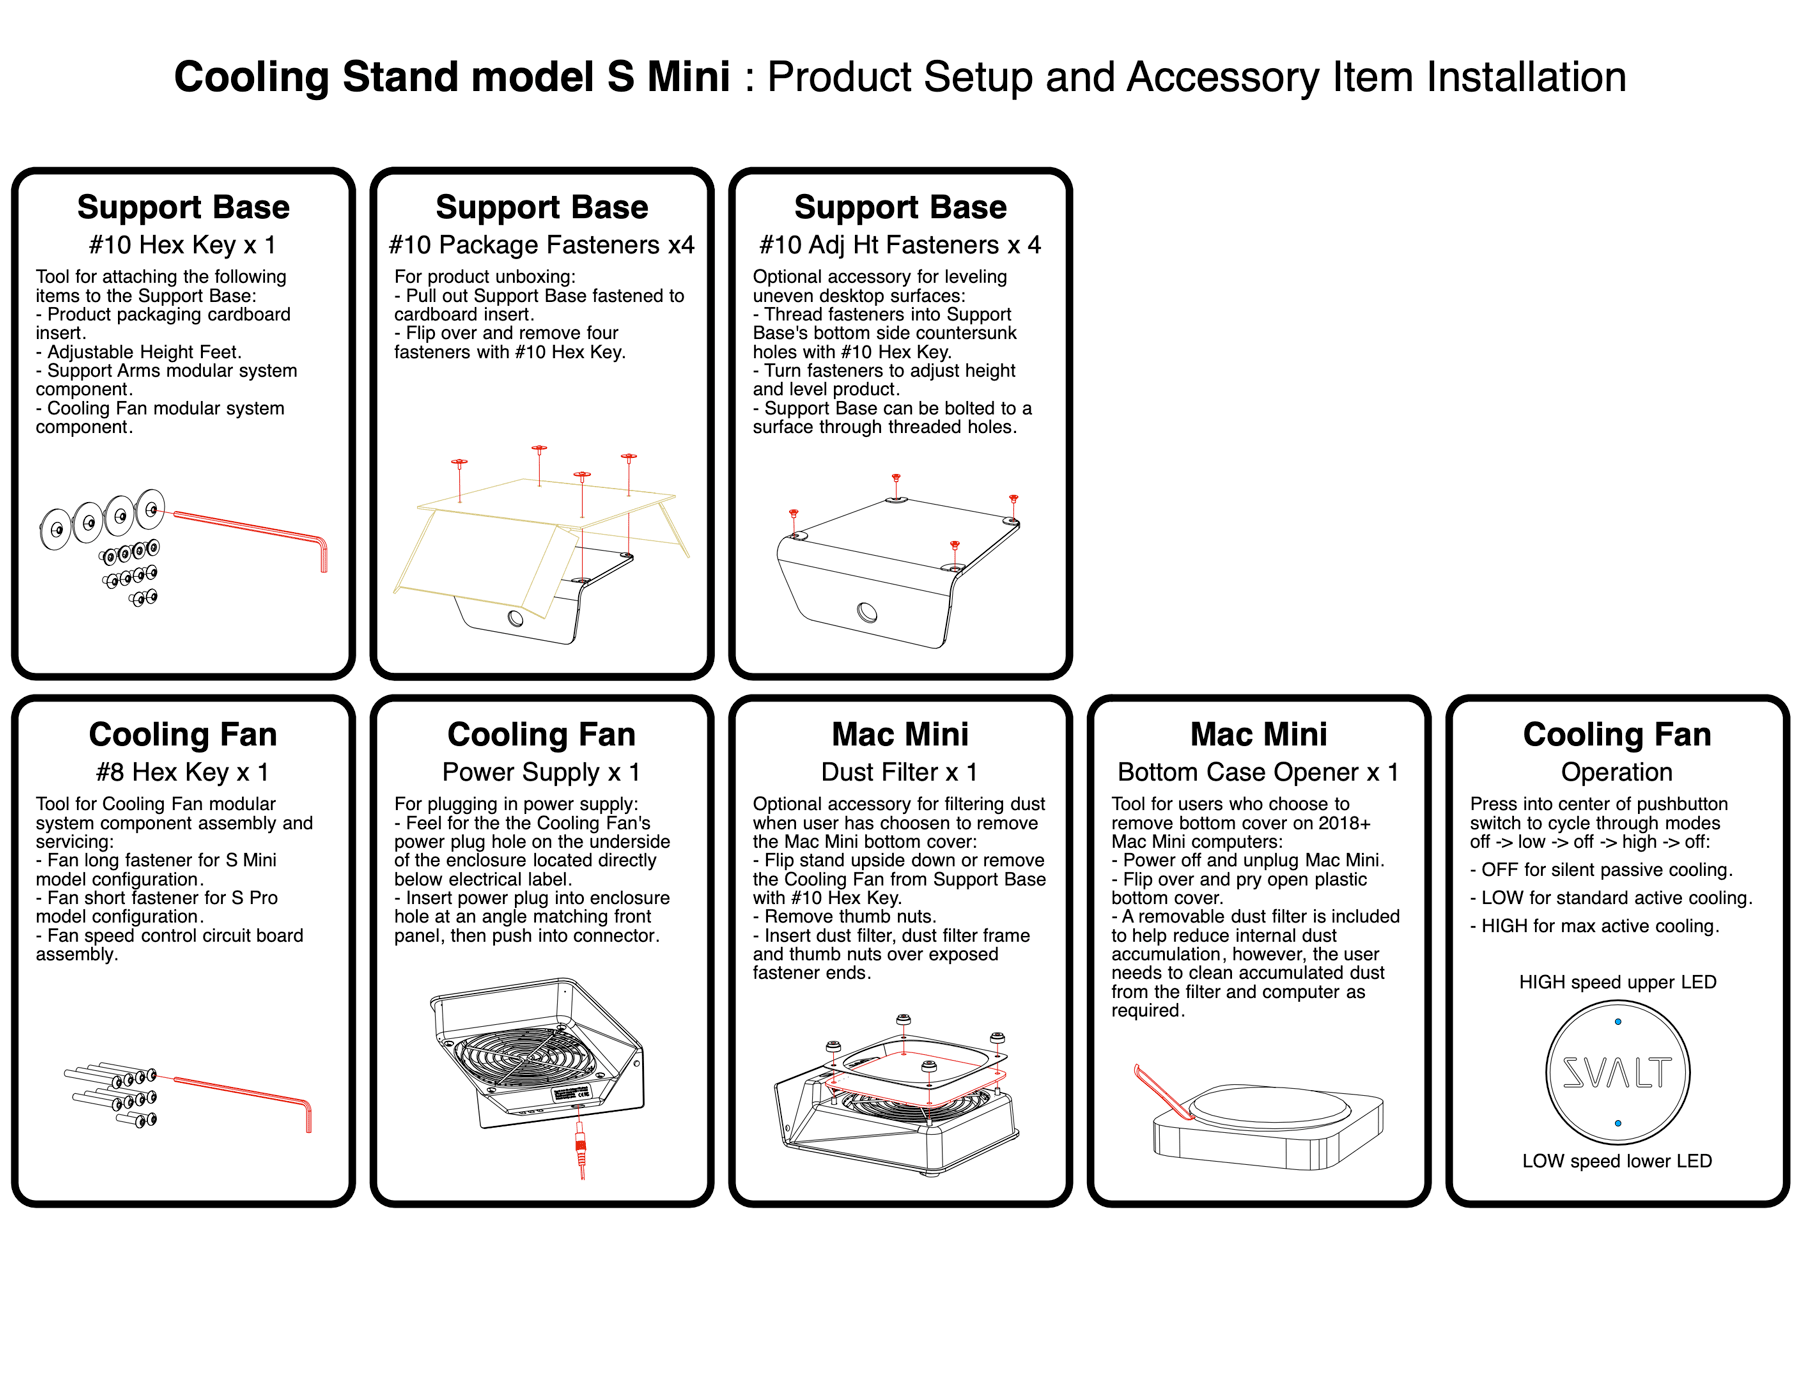 SVALT Cooling Stand model S Mini setup and accessory installation